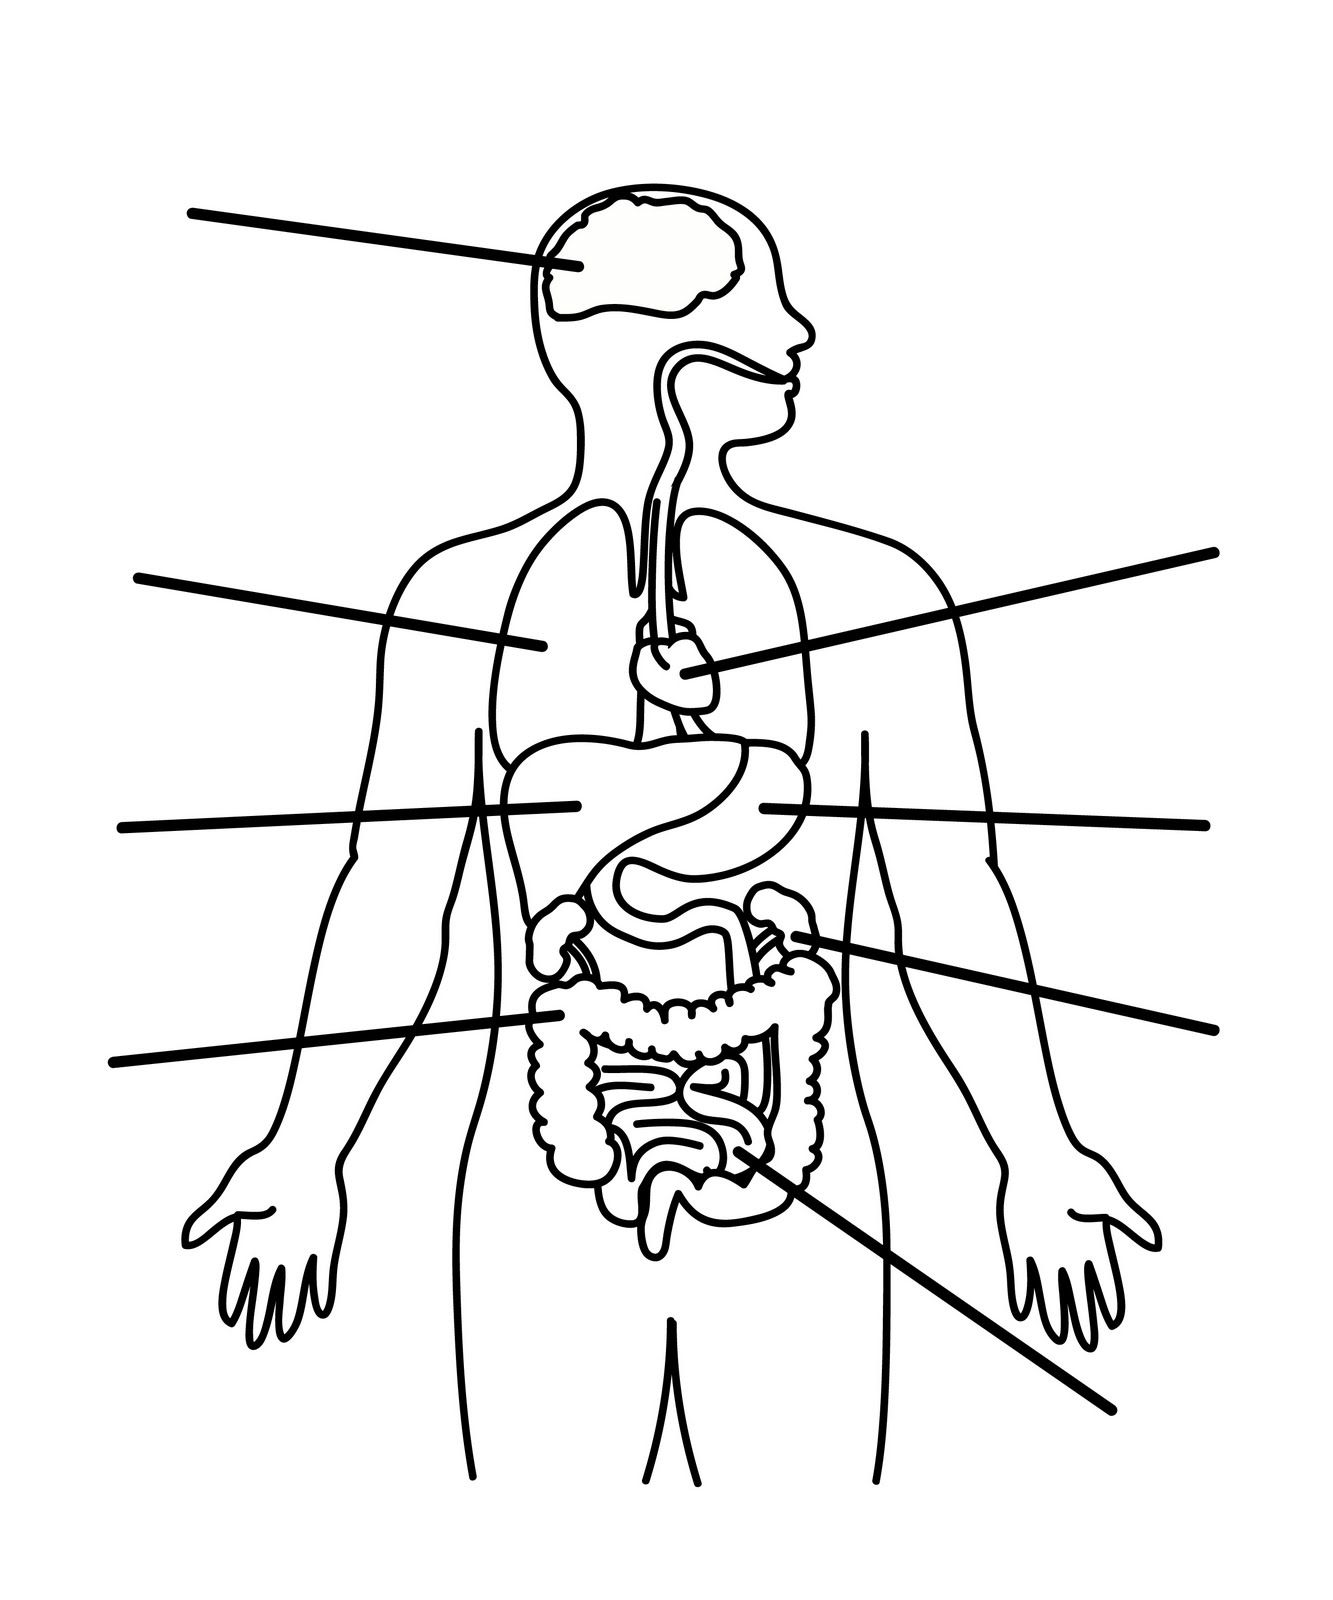 Human Body Anatomy Outline Printable For Kids Science Class Parts Of A Computer Diagram Related